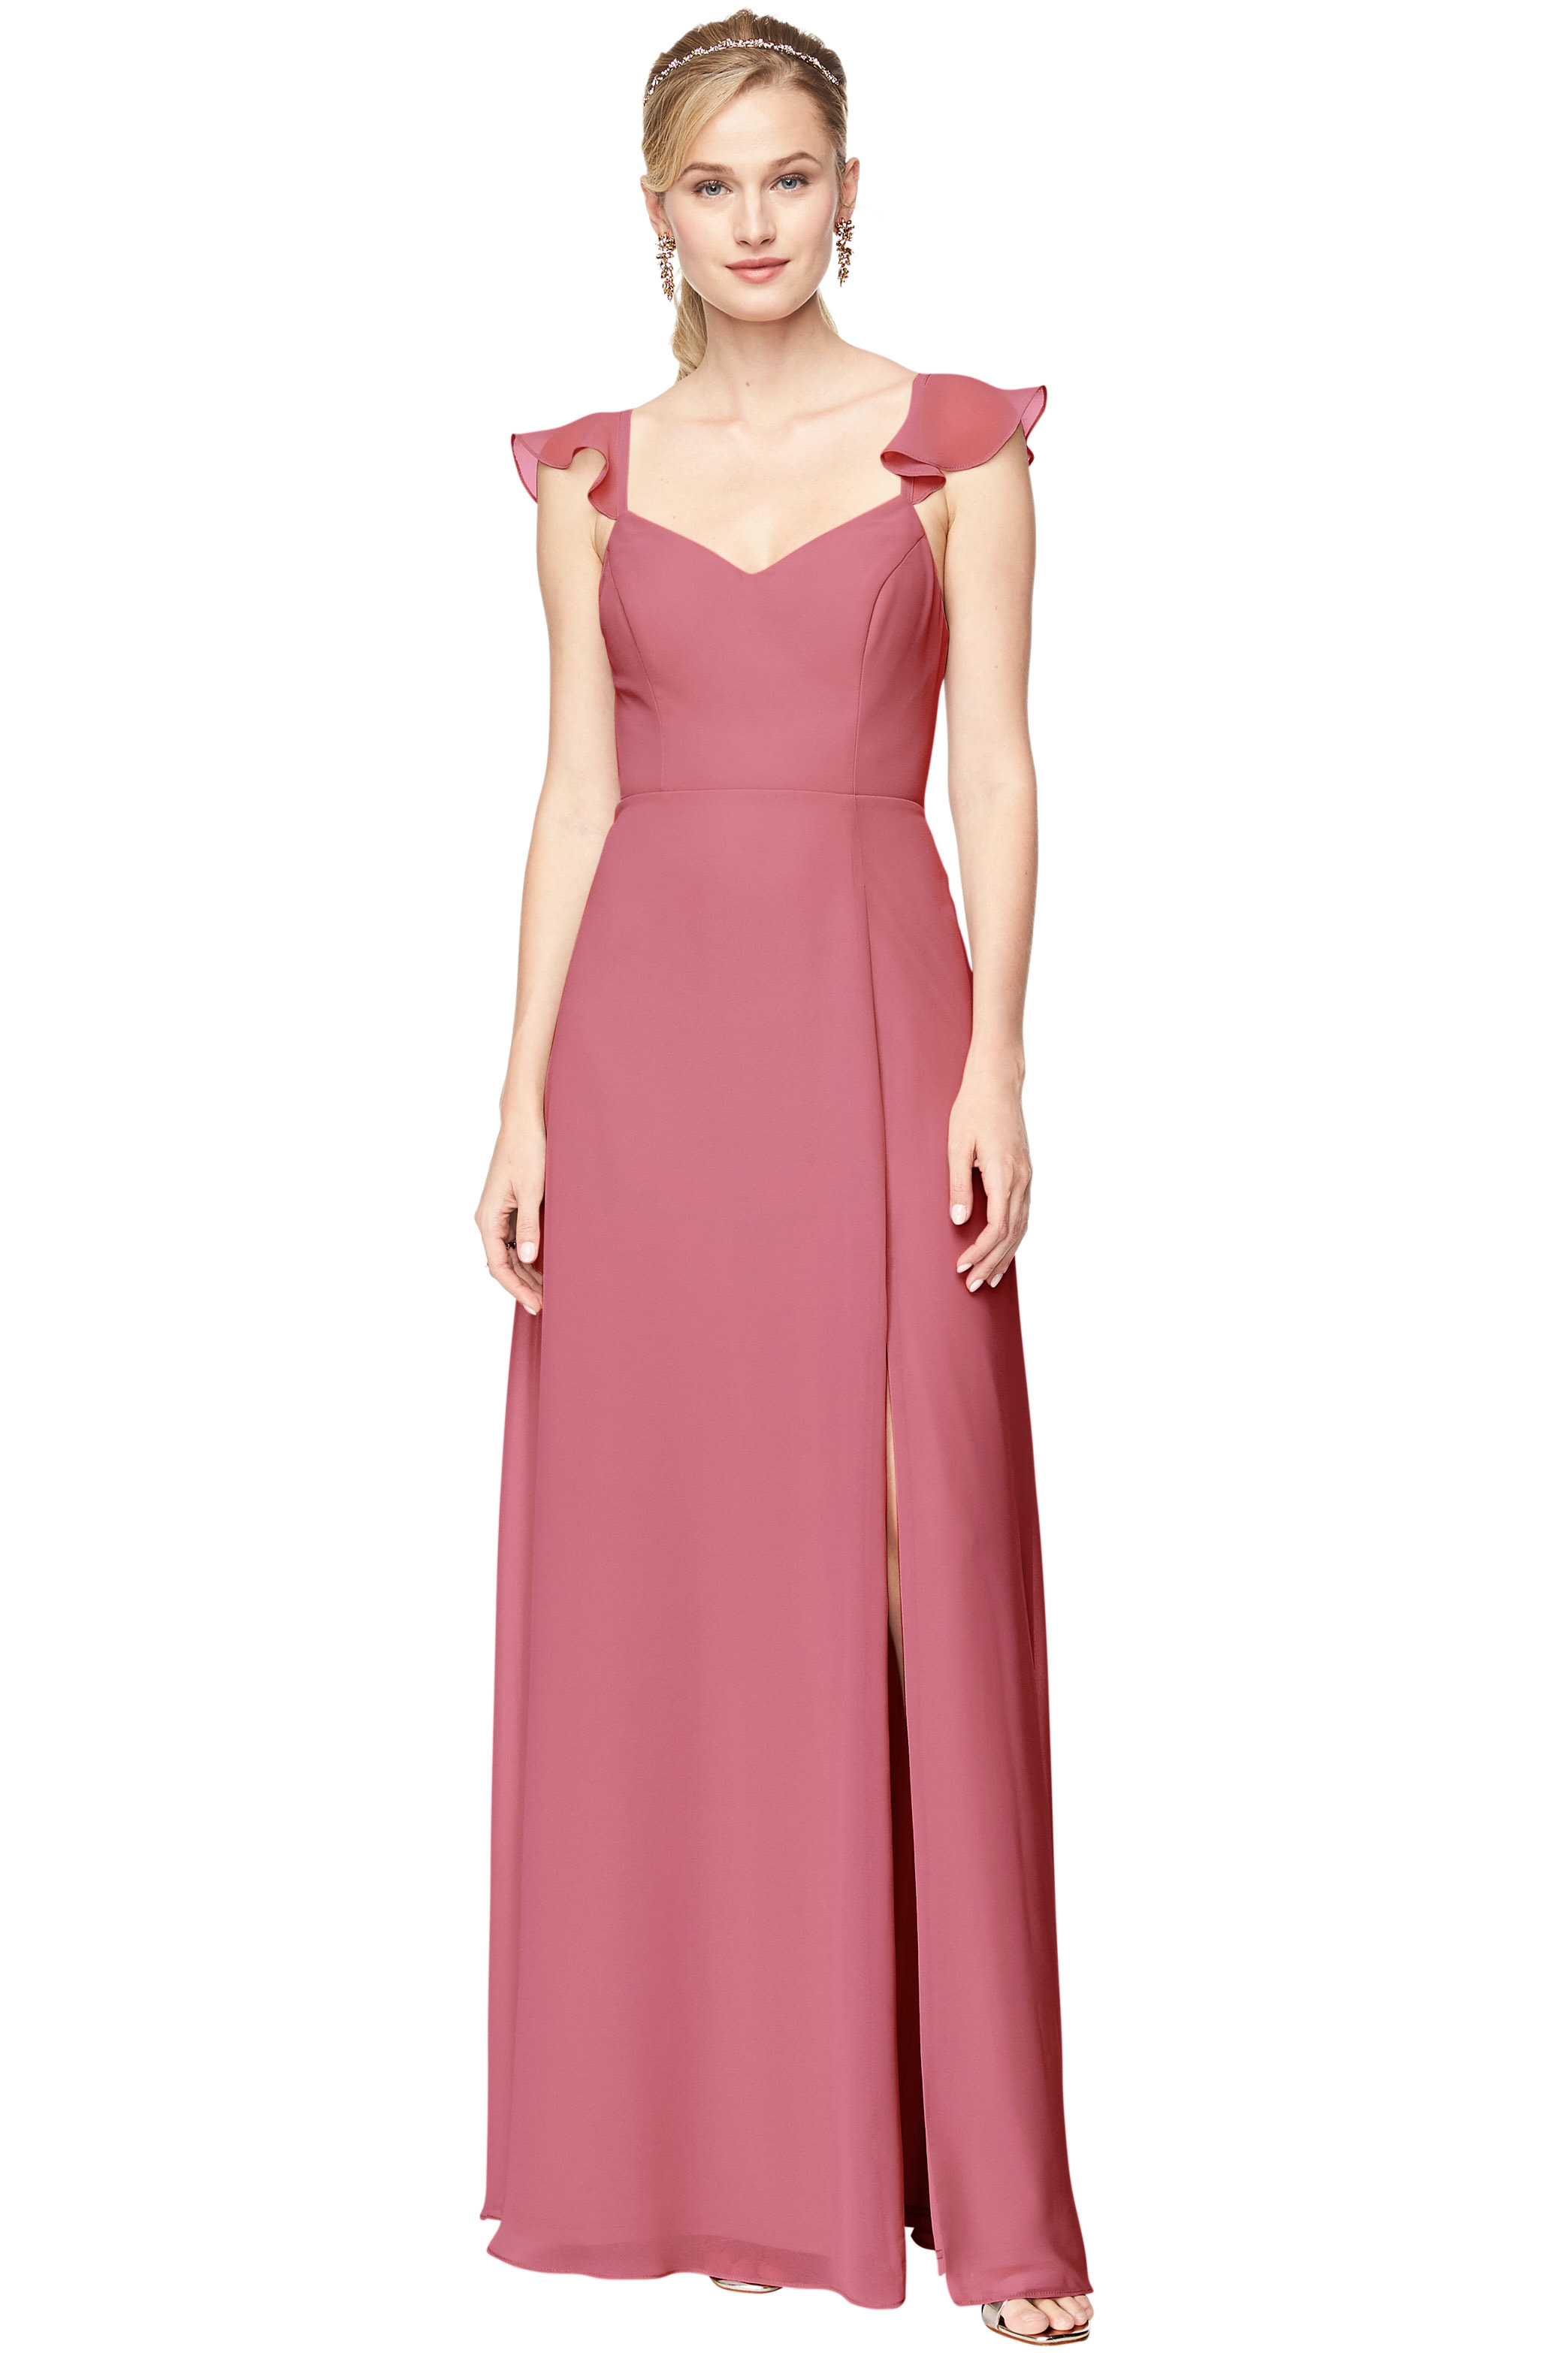 Bill Levkoff ROSEWOOD Chiffon V-Neck, Cap Sleeve A-line gown, $198.00 Front